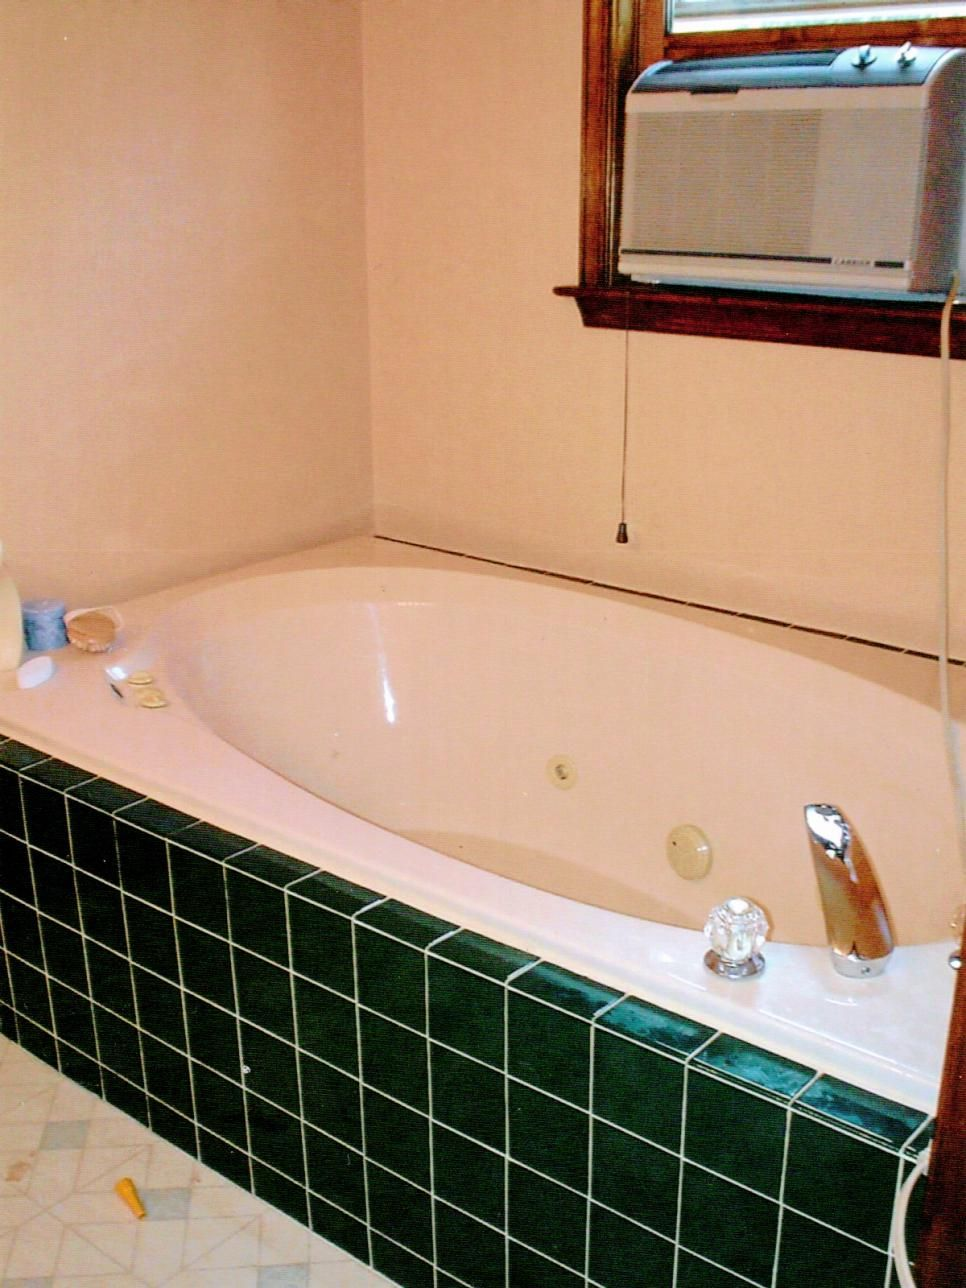 BudgetFriendly Bathroom Makeovers Hgtv Jetted Tub And Tubs - Green tile bathroom makeover